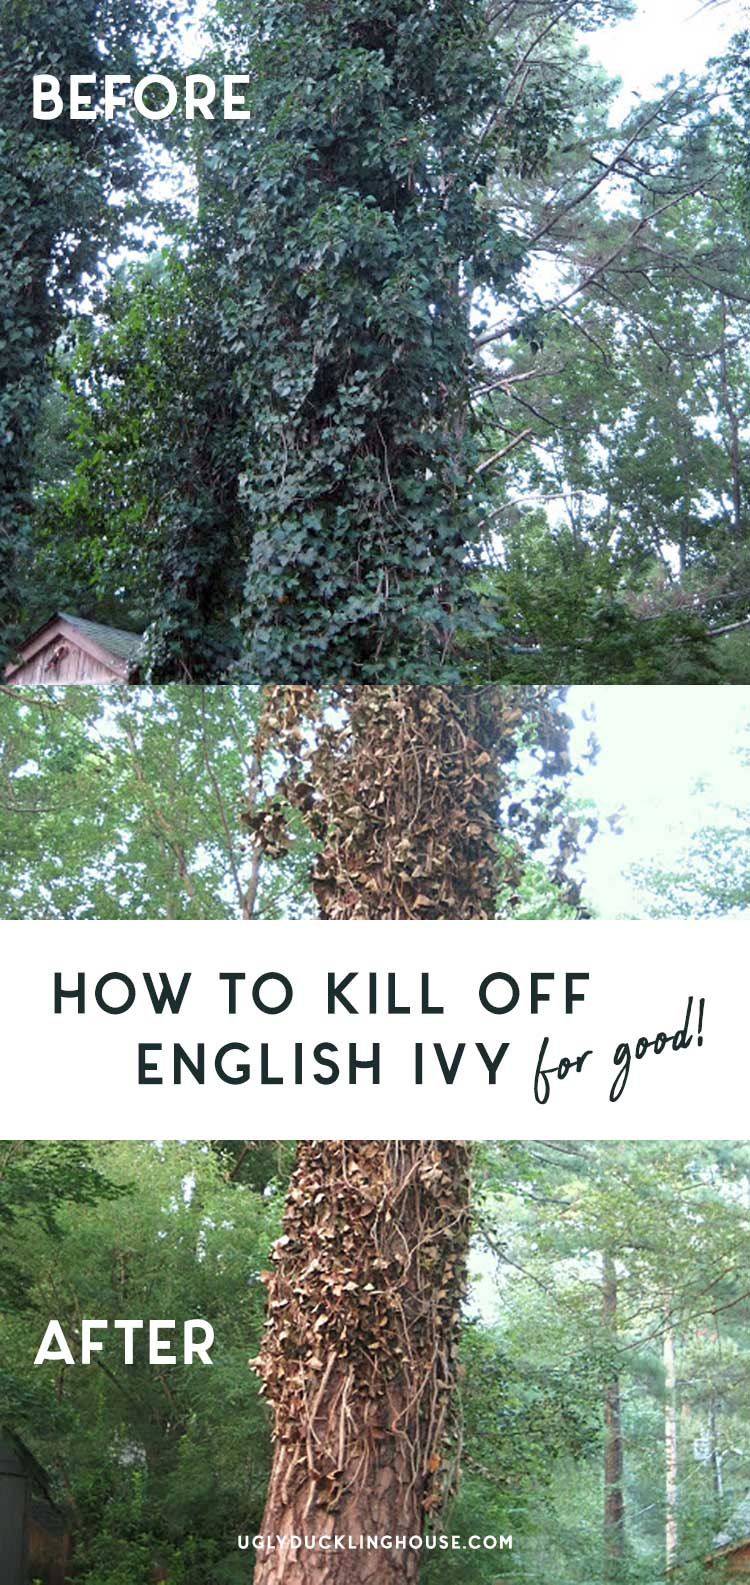 how to kill off aggressive and invasive english ivy on trees and overgrowth for good